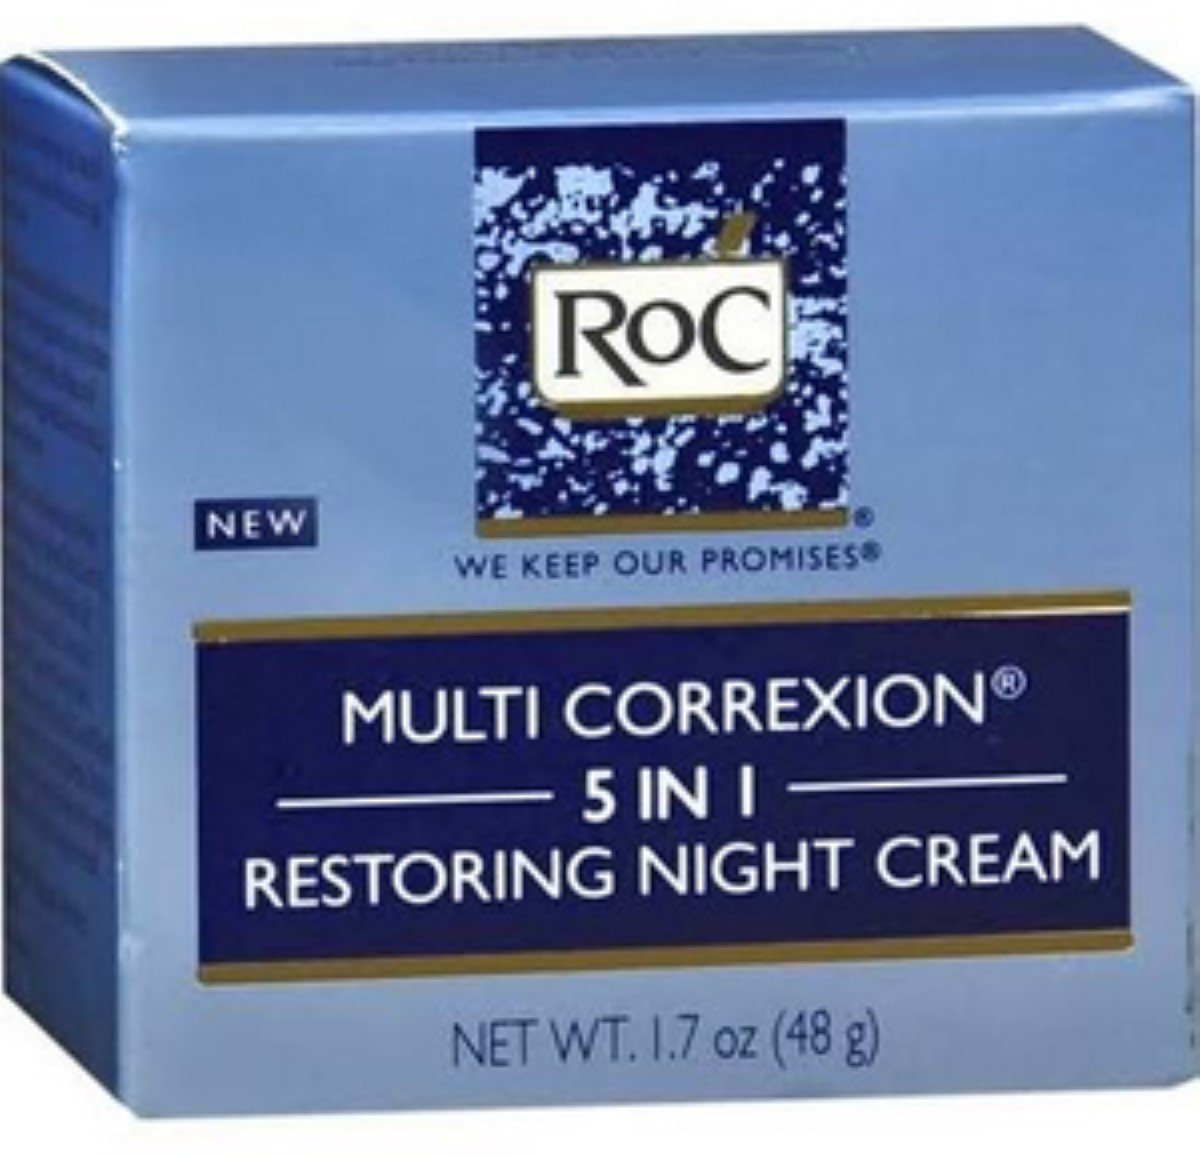 RoC Multi Correxion 5 in 1 Restoring Night Cream, 1.7 oz (Pack of 12)